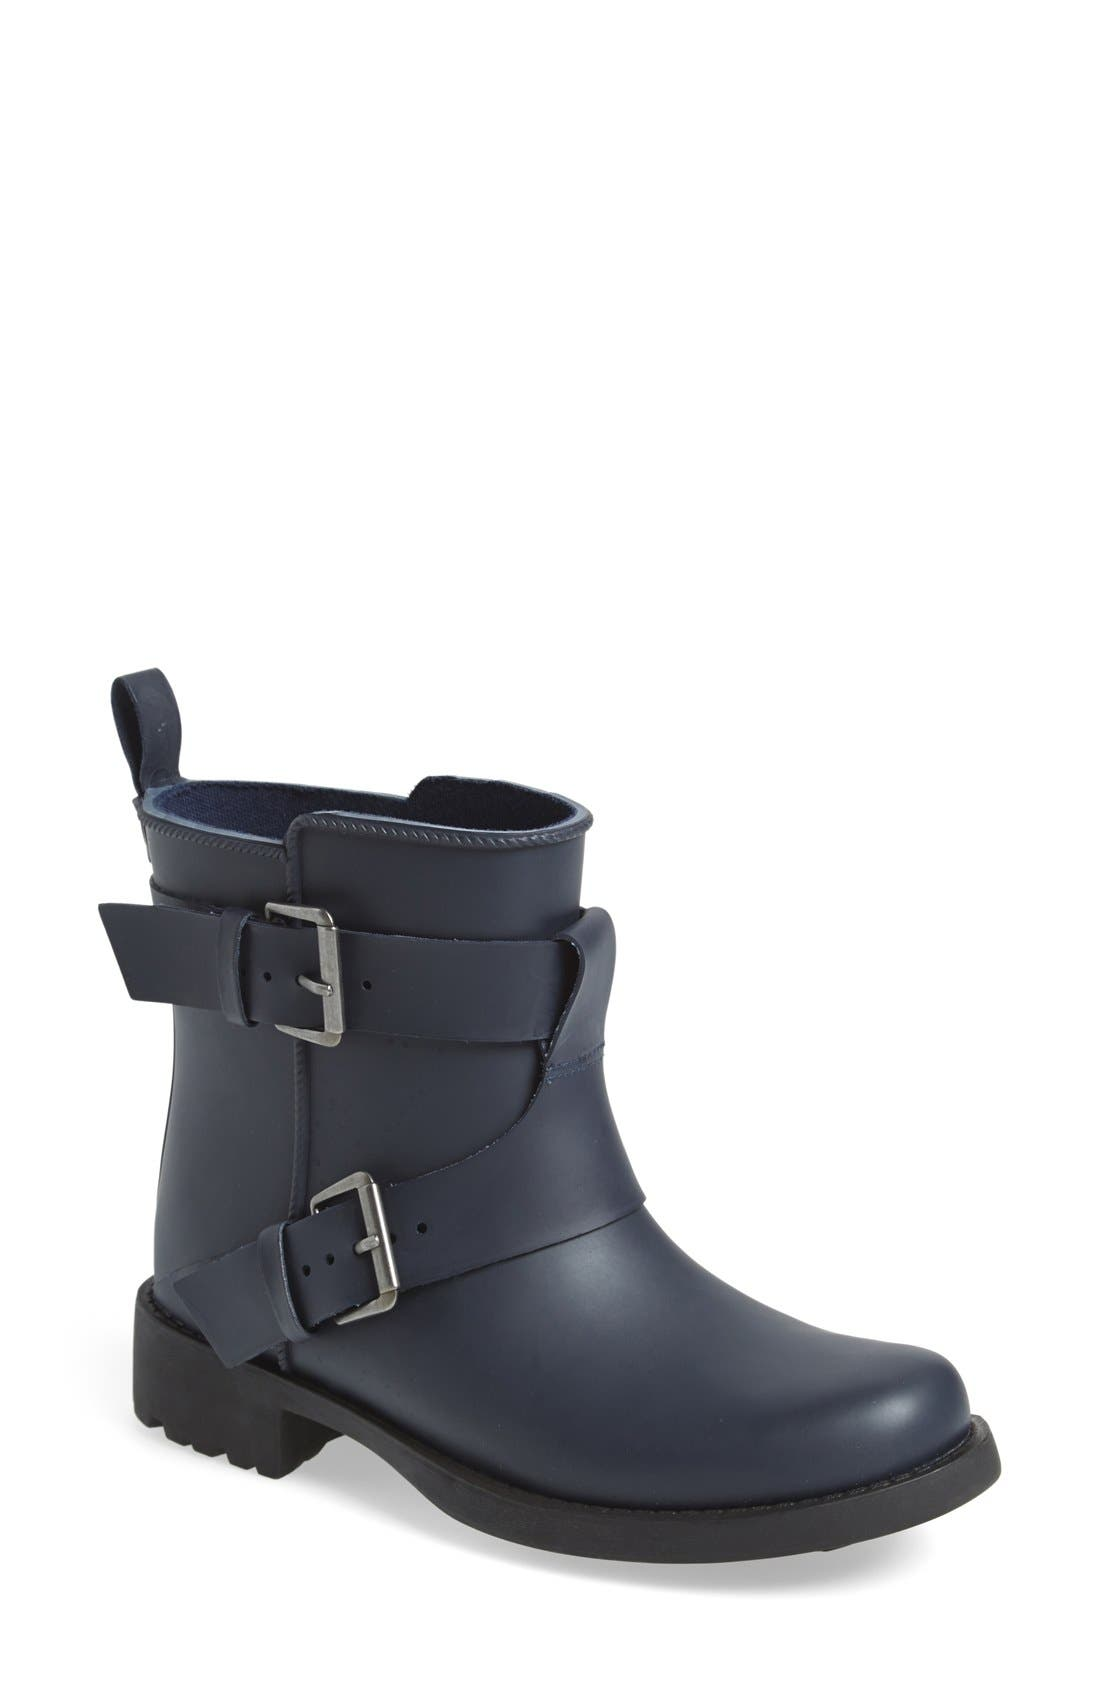 Main Image - Gentle Souls 'Best Fun' Moto Rain Boot (Women)